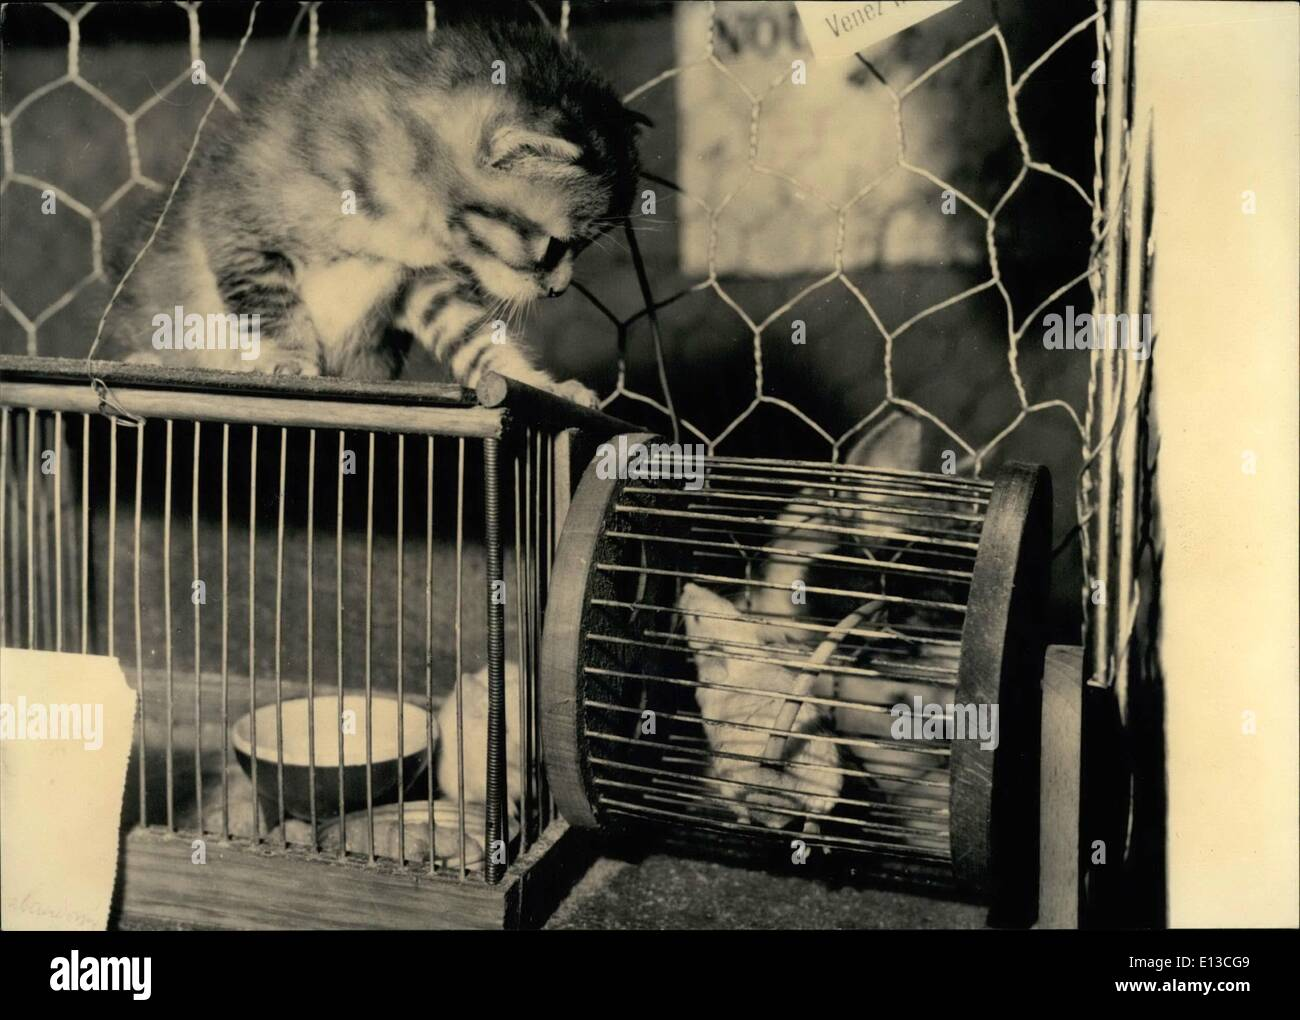 Mar. 02, 2012 - Friends or Enemies - OPS: This amusing shot was taken at the 15th Paris cat show now being held at the Salle Wagram. The Kitten and caged white mouse seem to wonder: Are they really enemies or can they be friends? - Stock Image